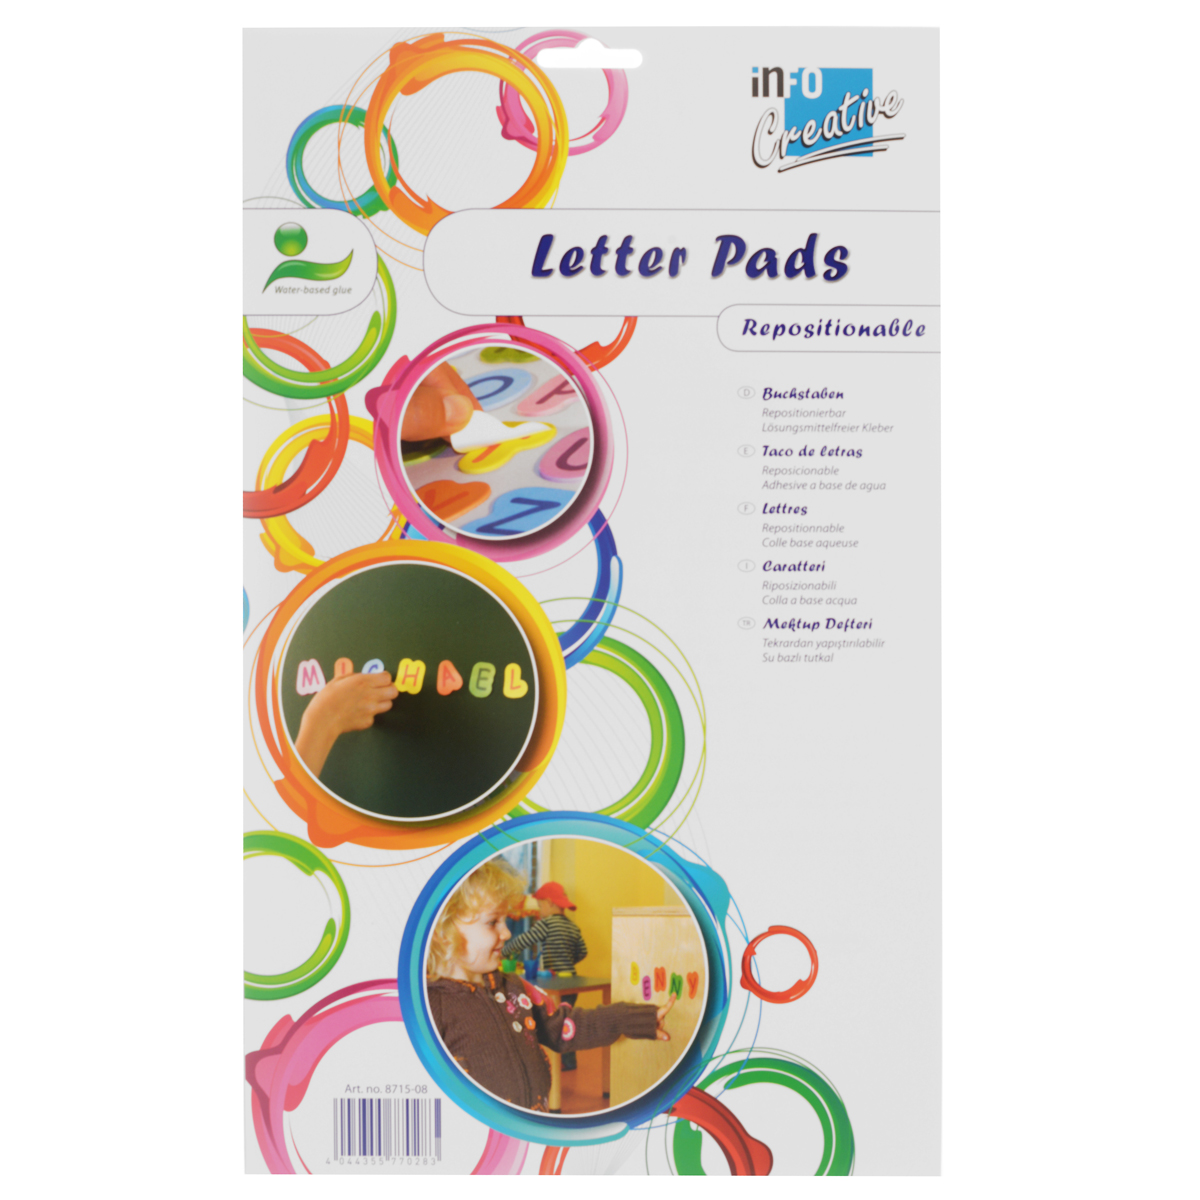 Набор самоклеящихся букв Creative Letter Pads docket gold perforated pads legal rule letter white 12 50 sheets p